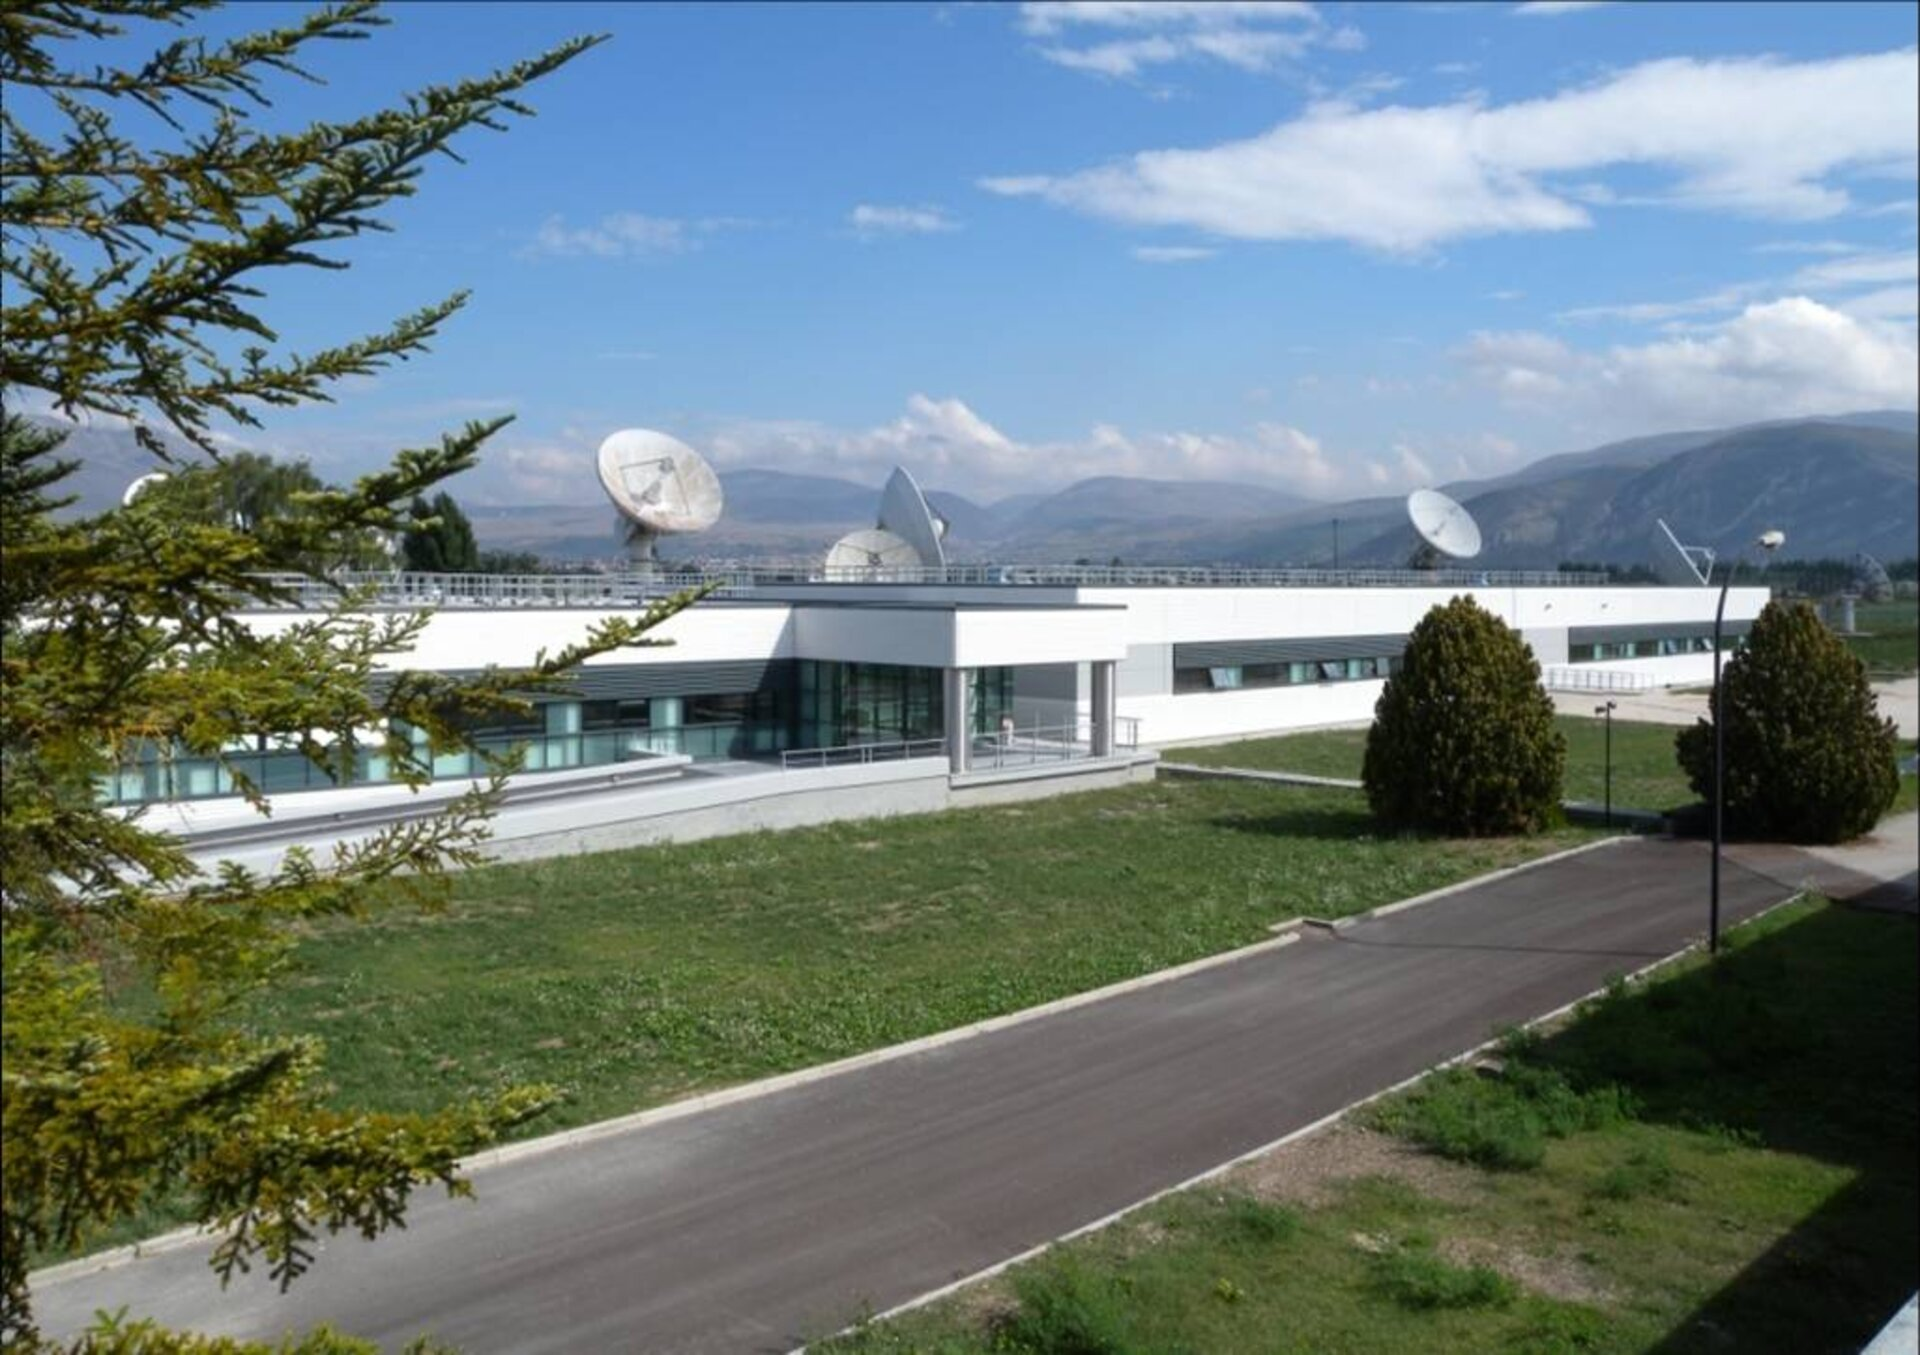 Galileo Control Centre at Fucino